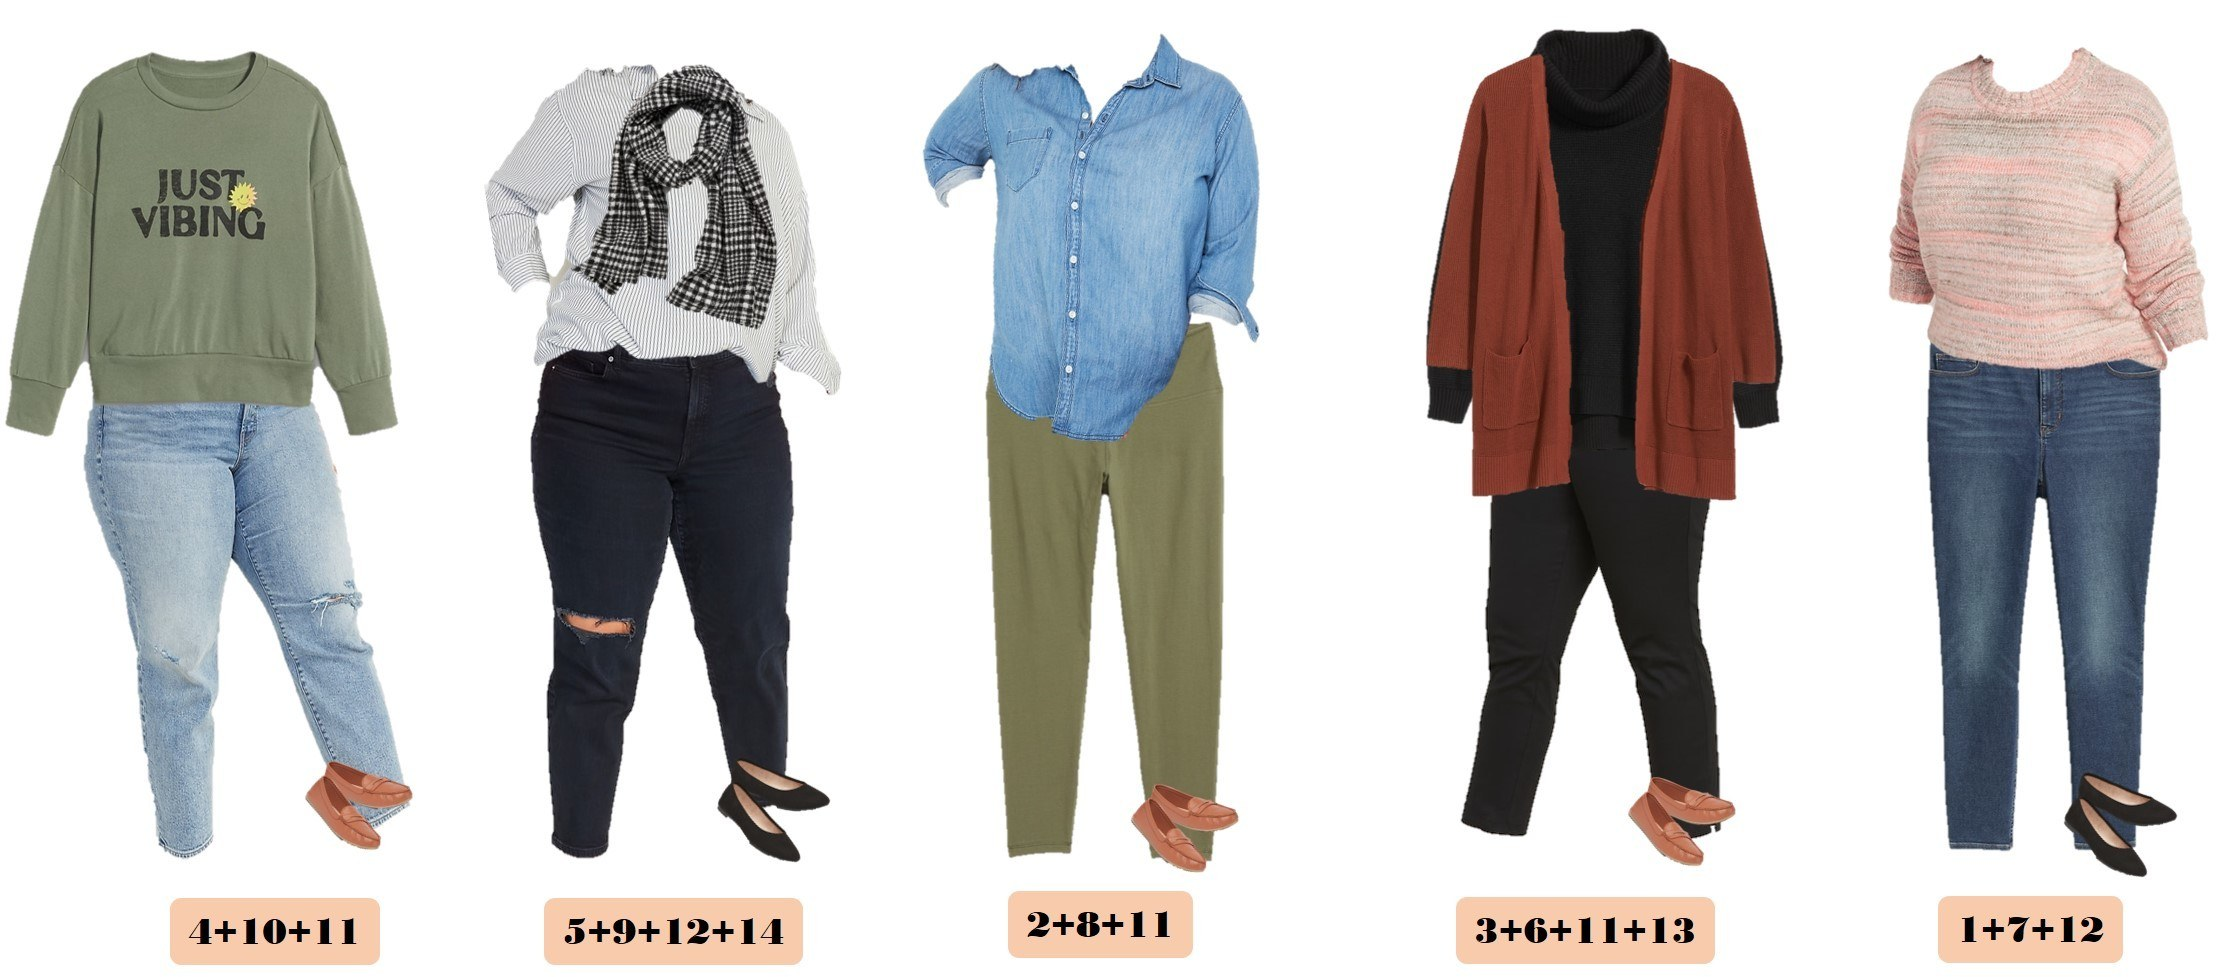 5 Plus Size Mix and Match Outfits